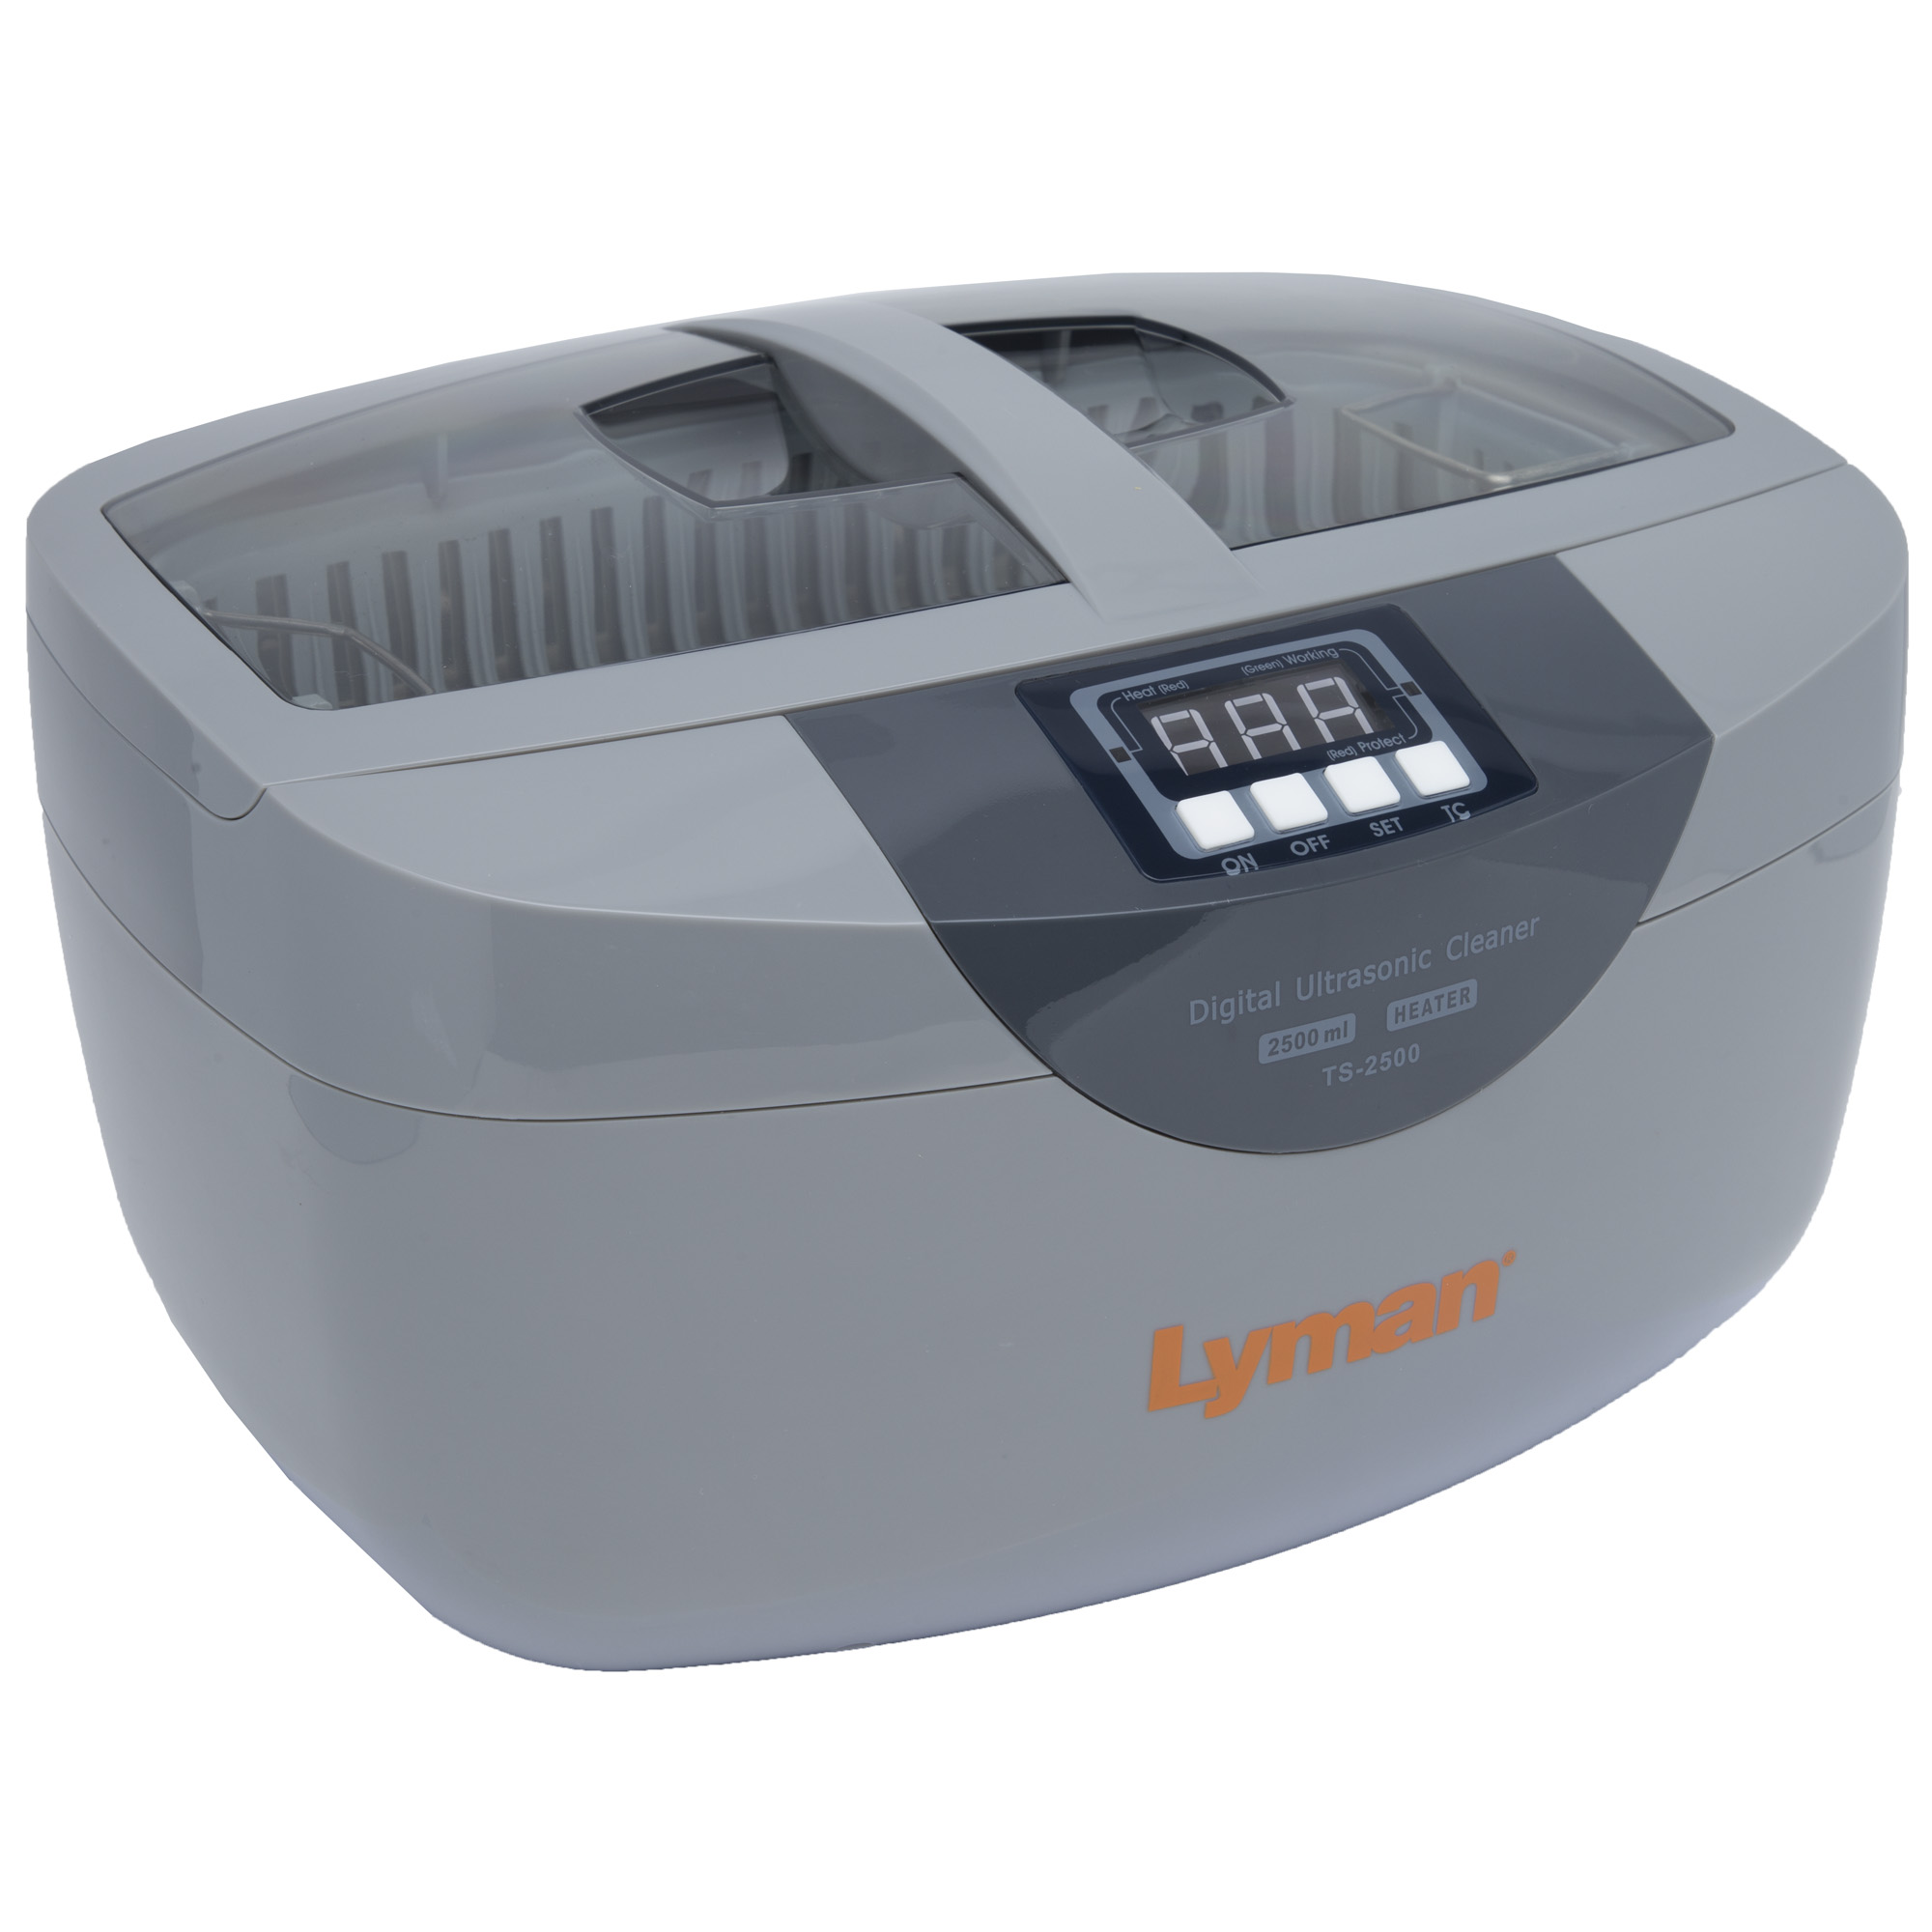 """Lyman's Turbo Sonic delivers ultrasonic gun cleaning that allows the reloader to clean cases inside and out in less than 10 minutes. The heated tank and Lyman's specially formulated case cleaning solution deliver superior case cleaning of case and primer pockets. The ultrasonic cavitation lifts and dissolves carbon"""" dirt and any residue left on fired cases."""